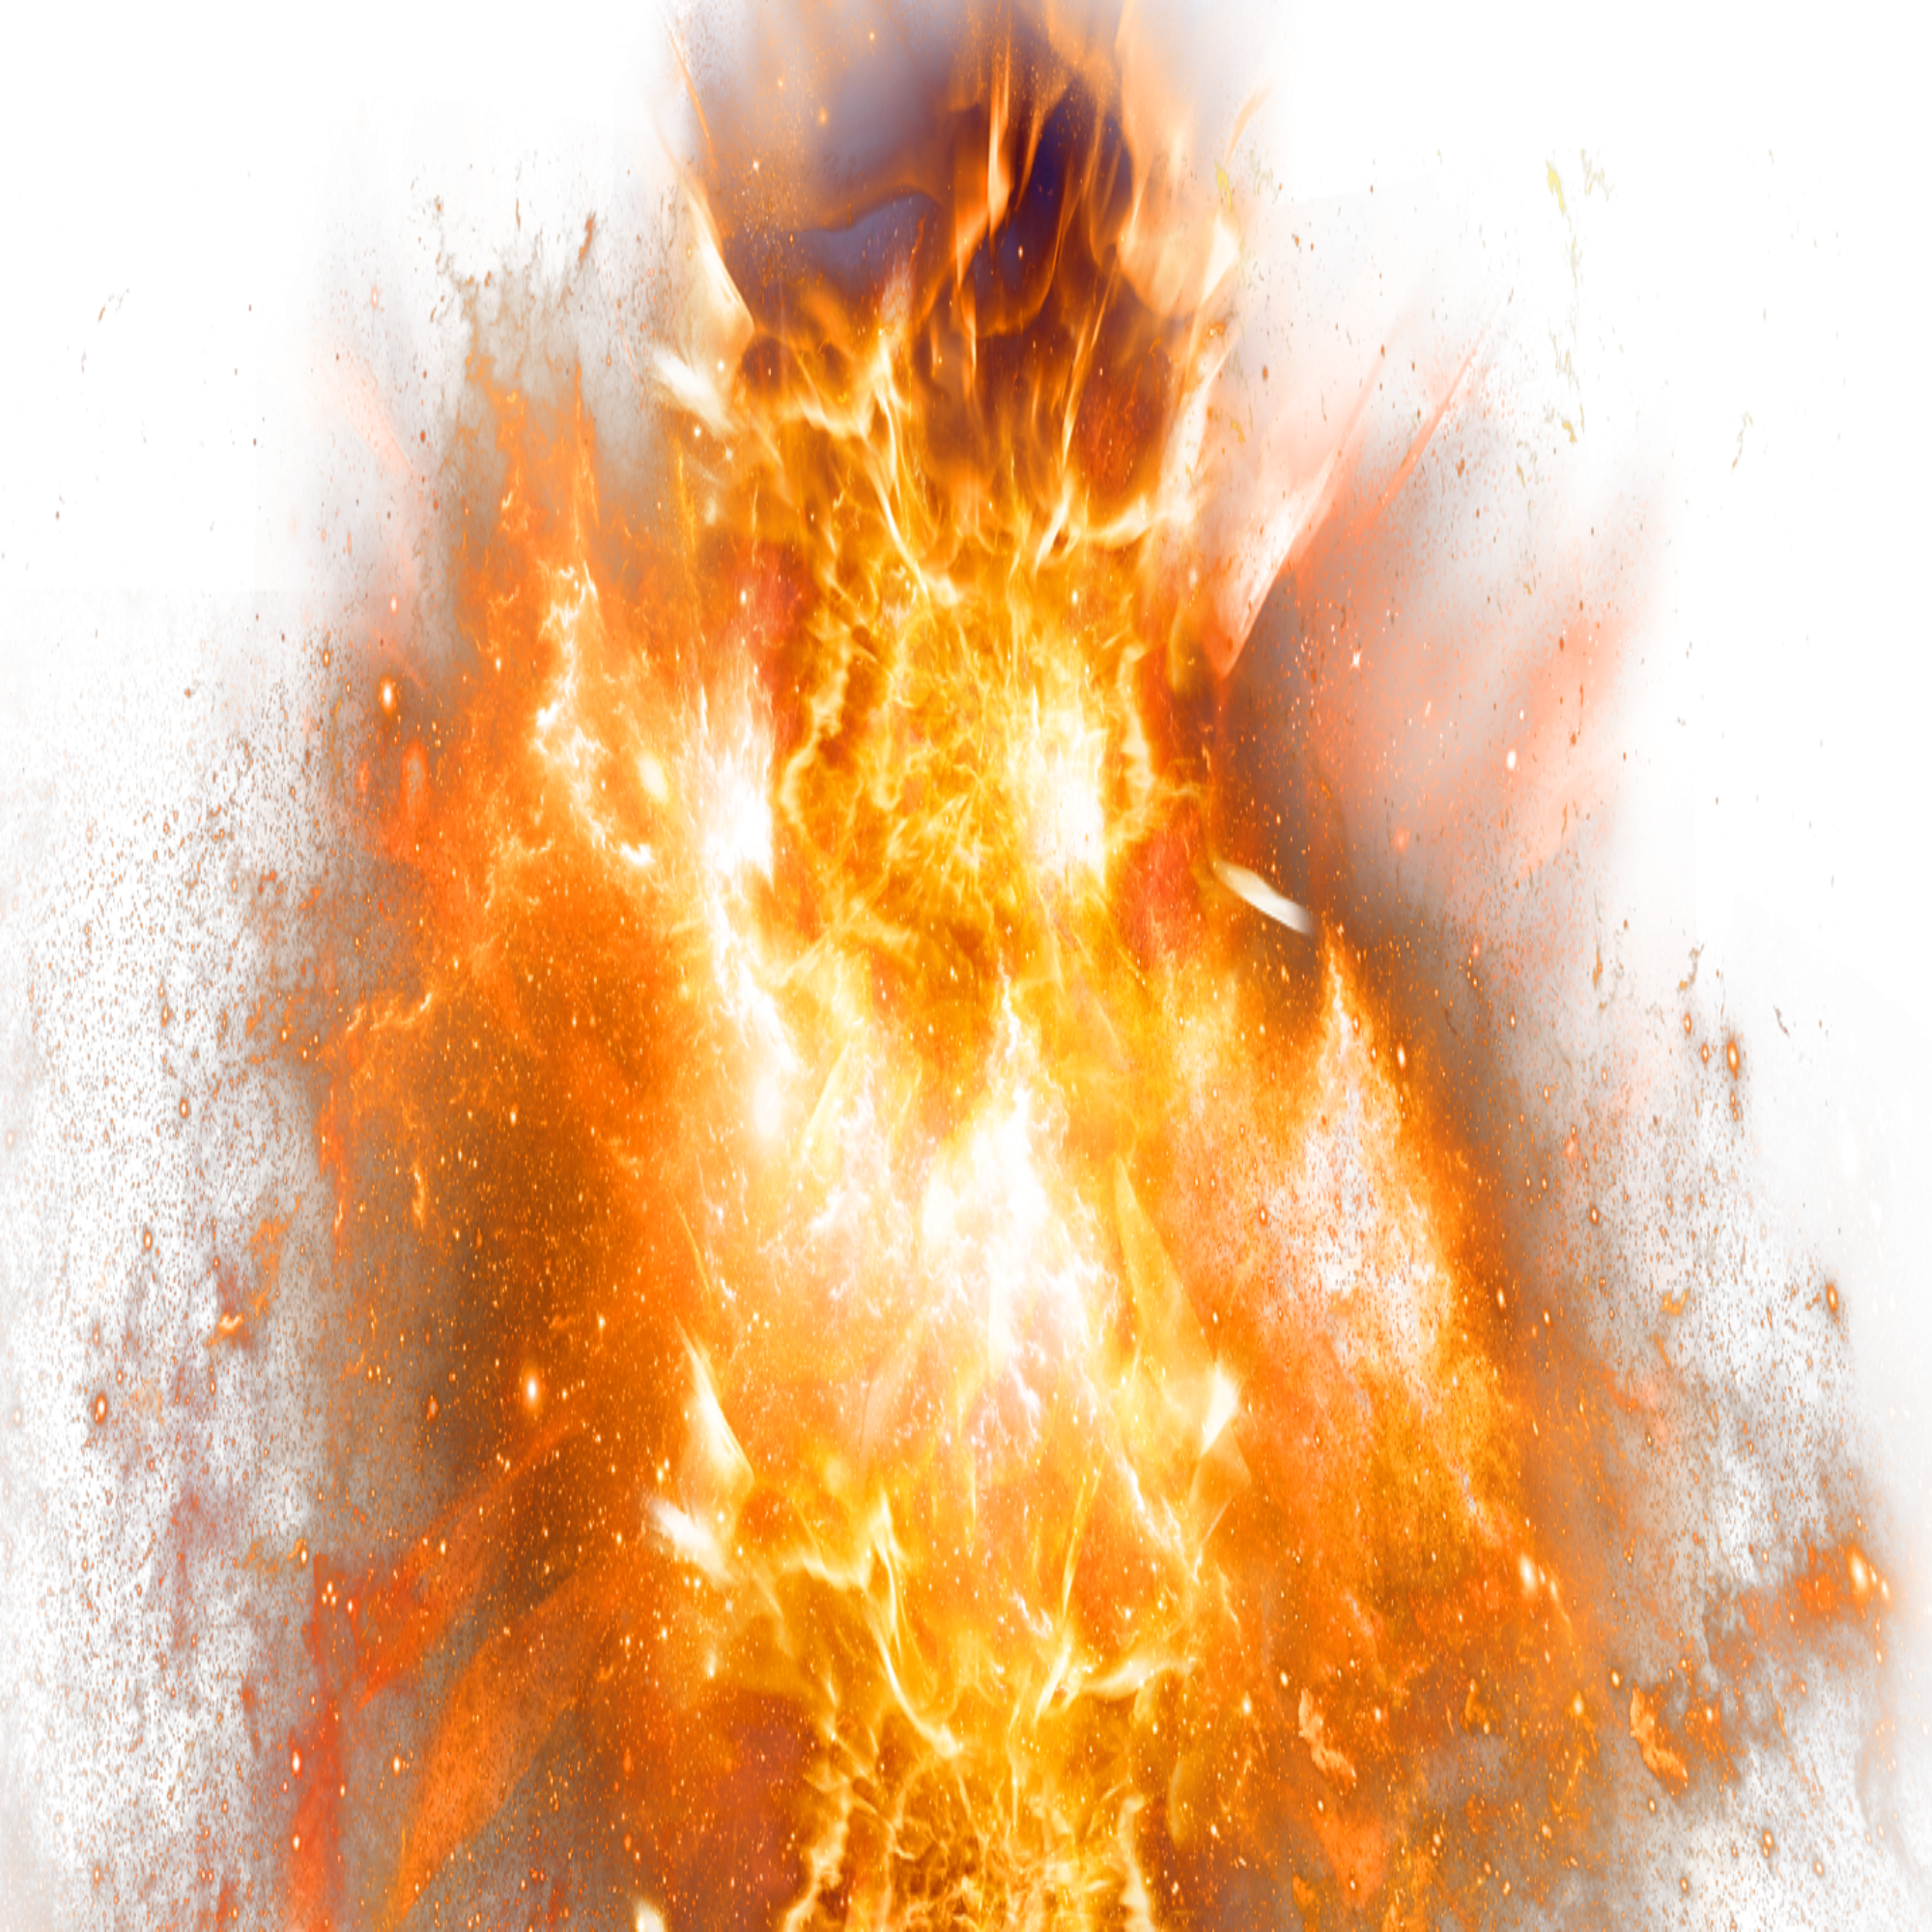 Explosion With Fire Png Image Image Fire Png Images